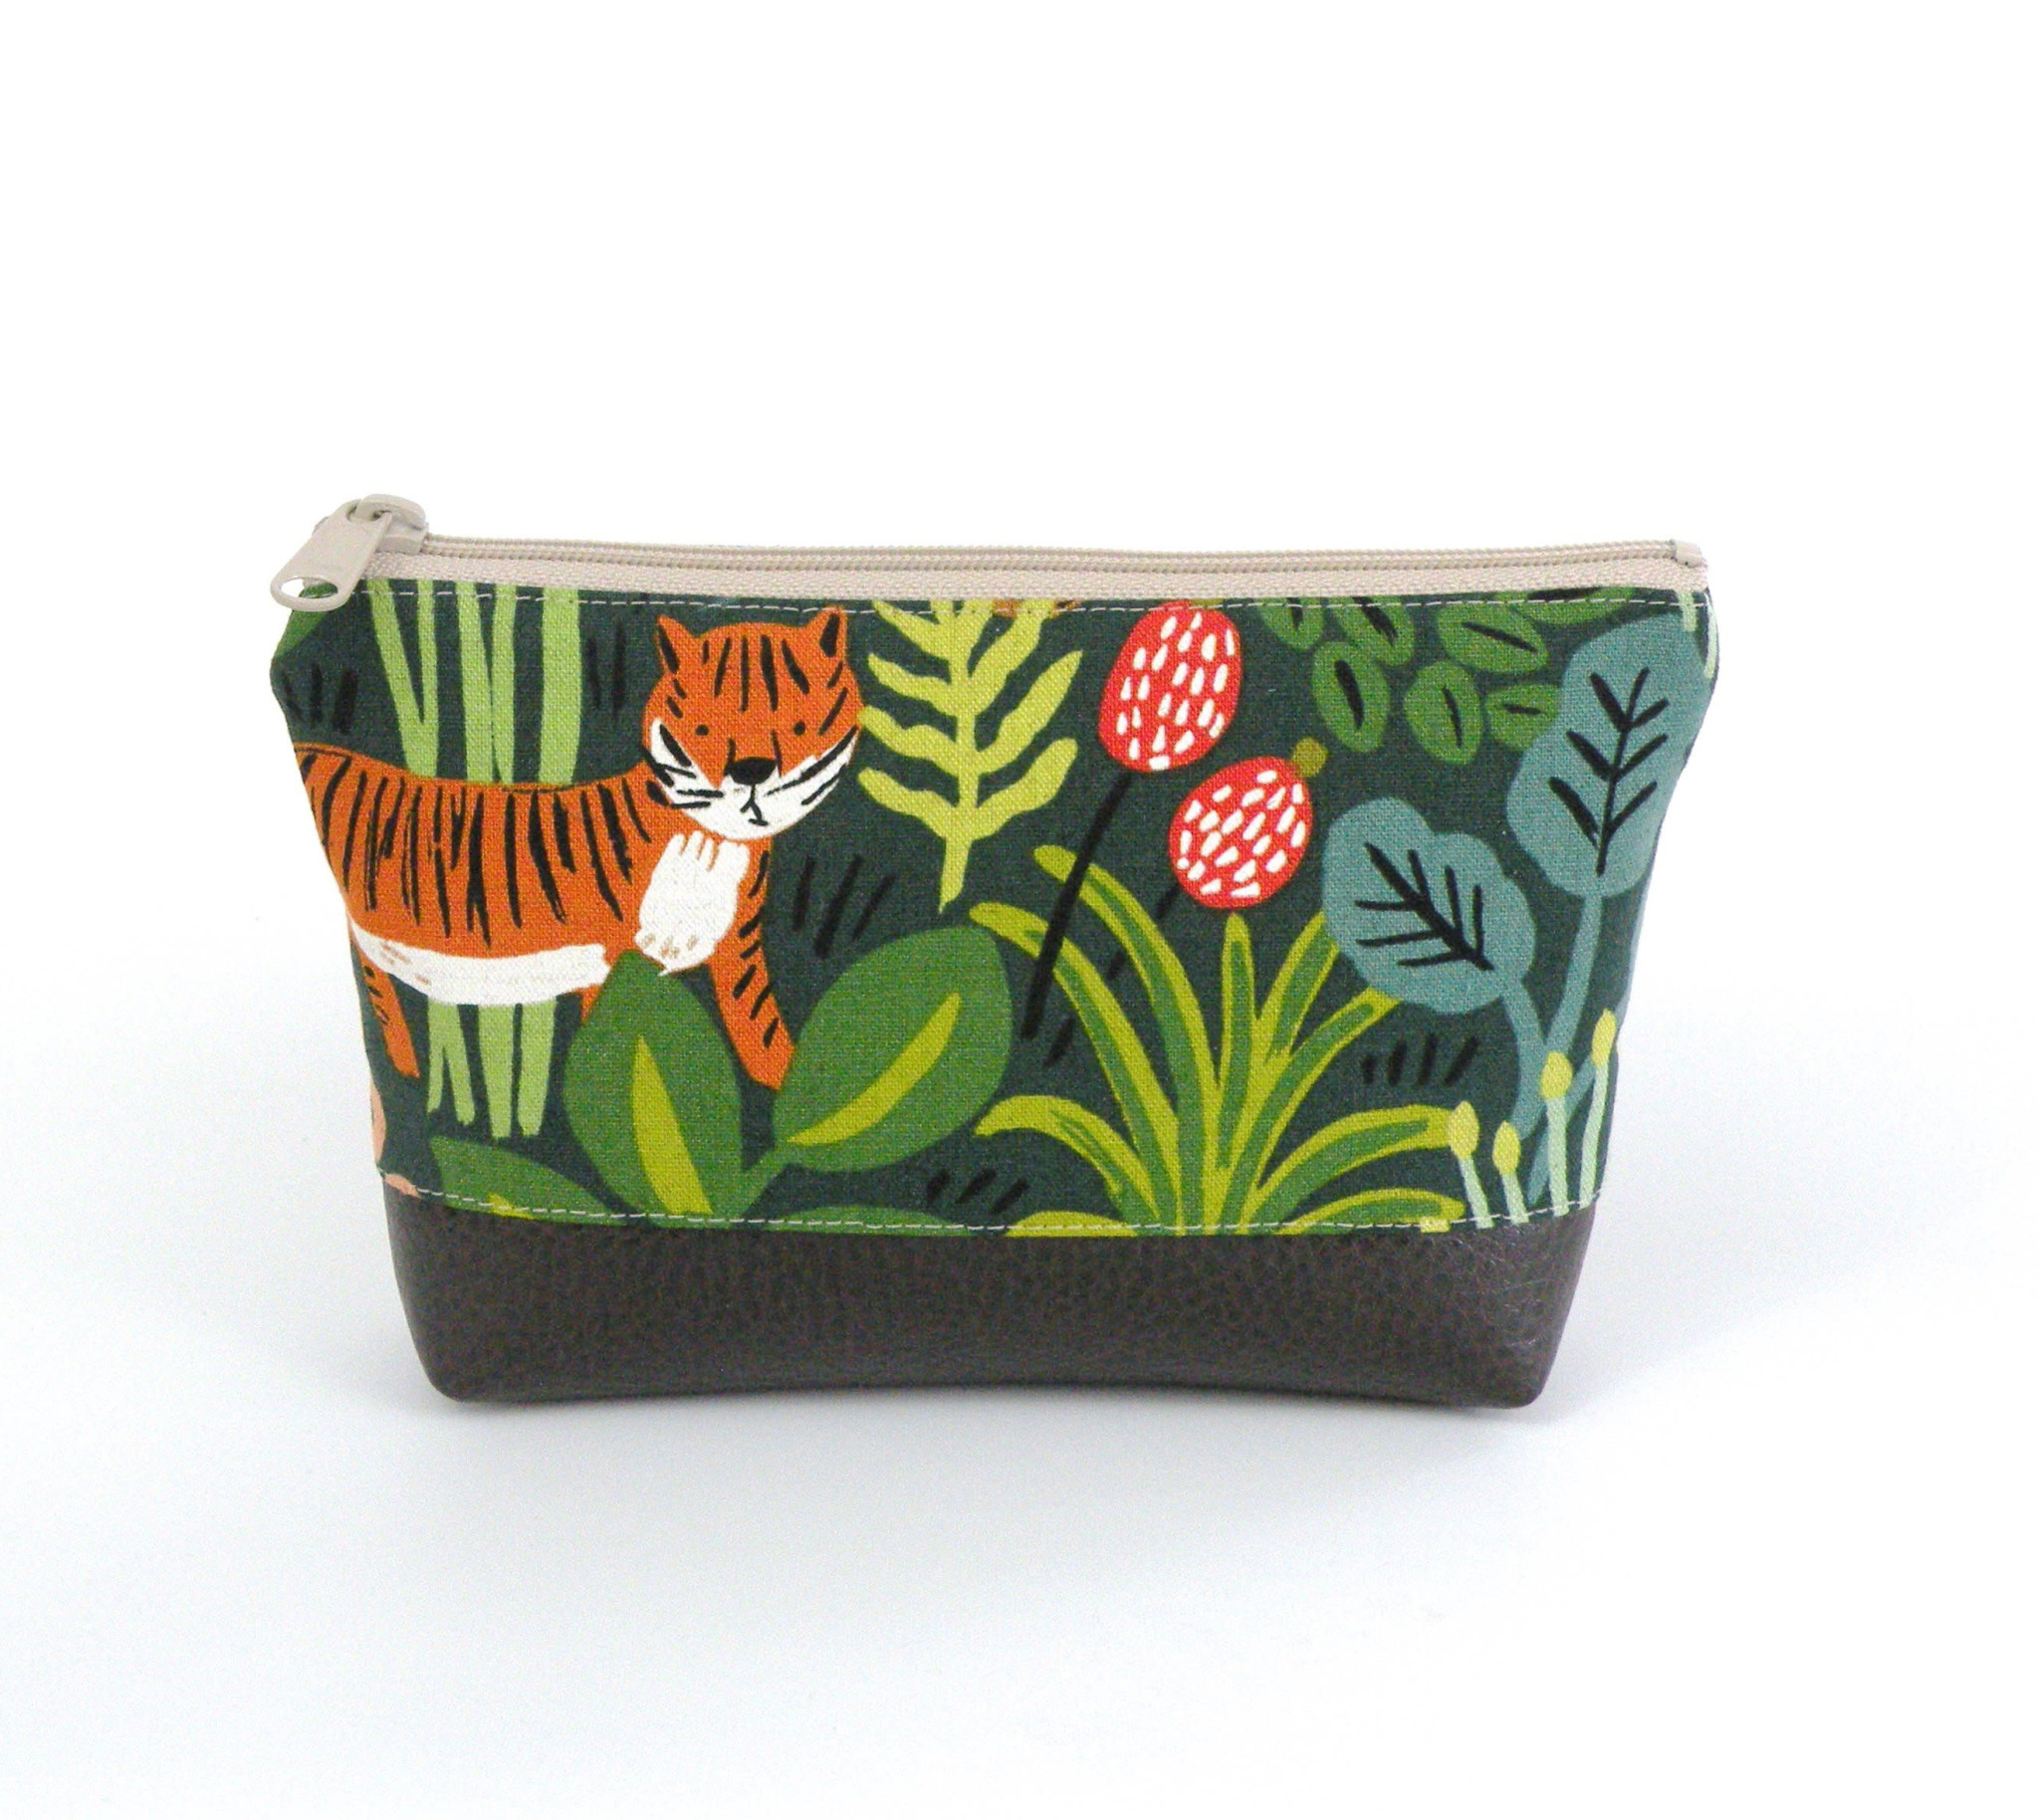 Red Staggerwing Cosmetic Clutch Small in Jungle Floral